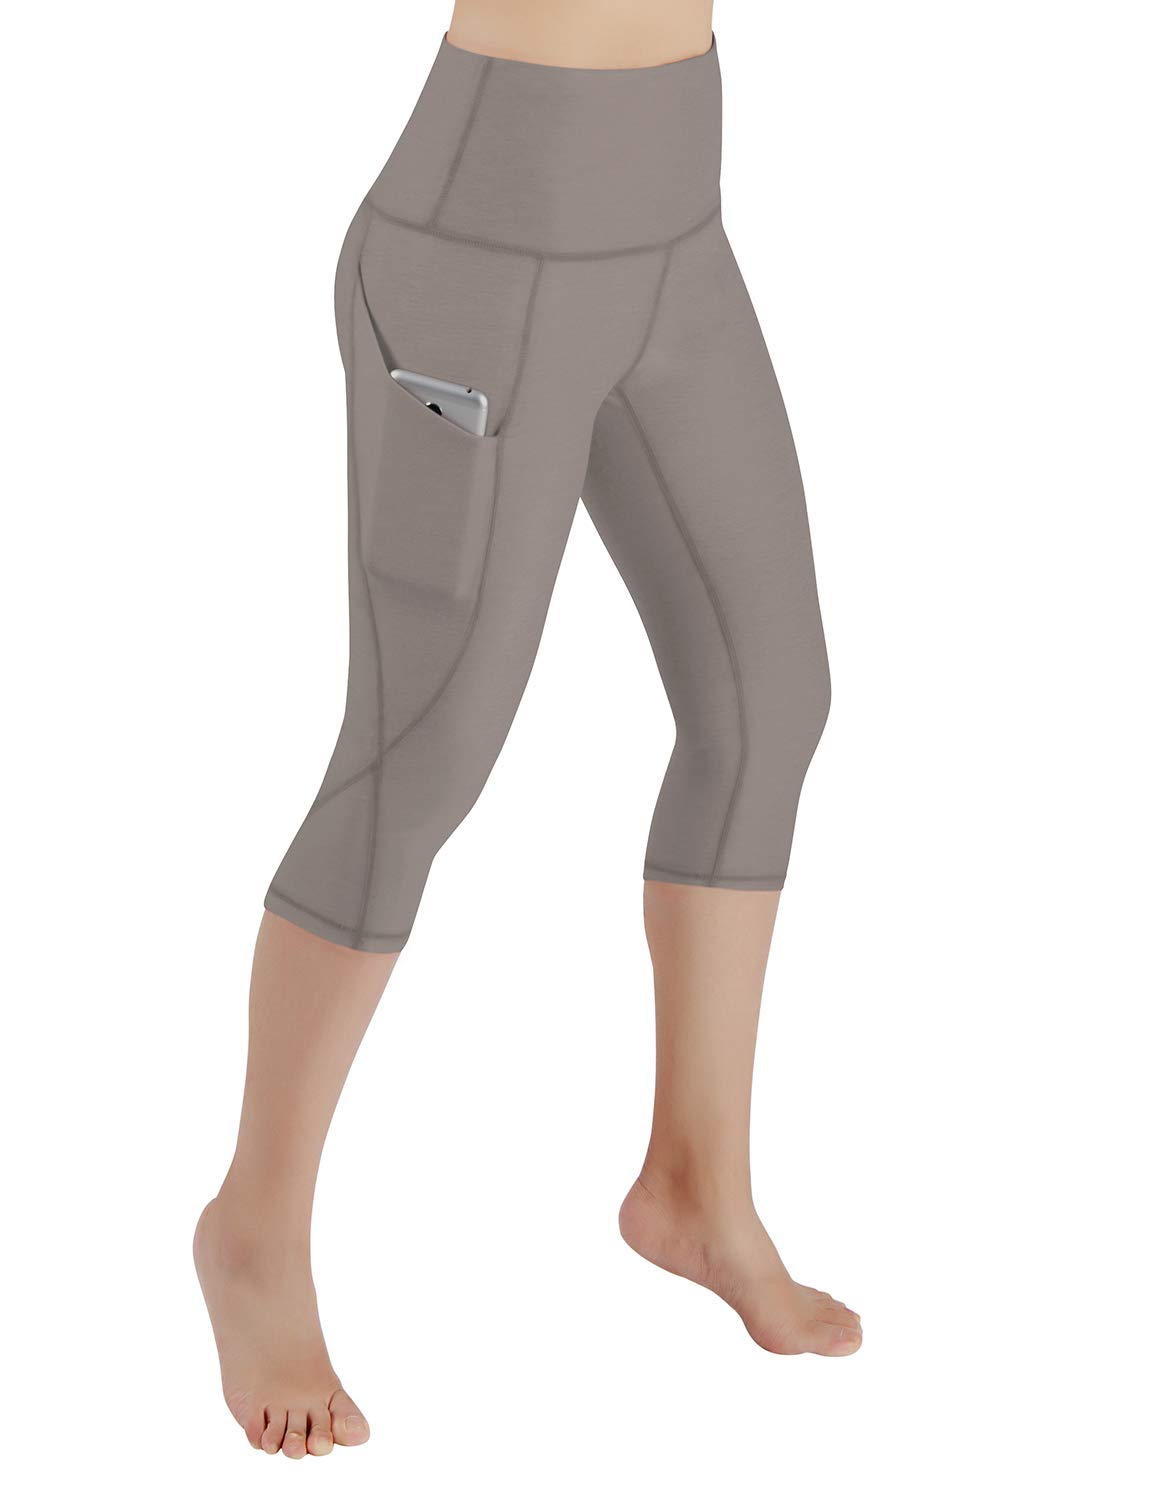 ODODOS Women's High Waist Yoga Capris with Pockets,Tummy Control,Workout Capris Running 4 Way Stretch Yoga Leggings with Pockets,DarkBeige,X-Large by ODODOS